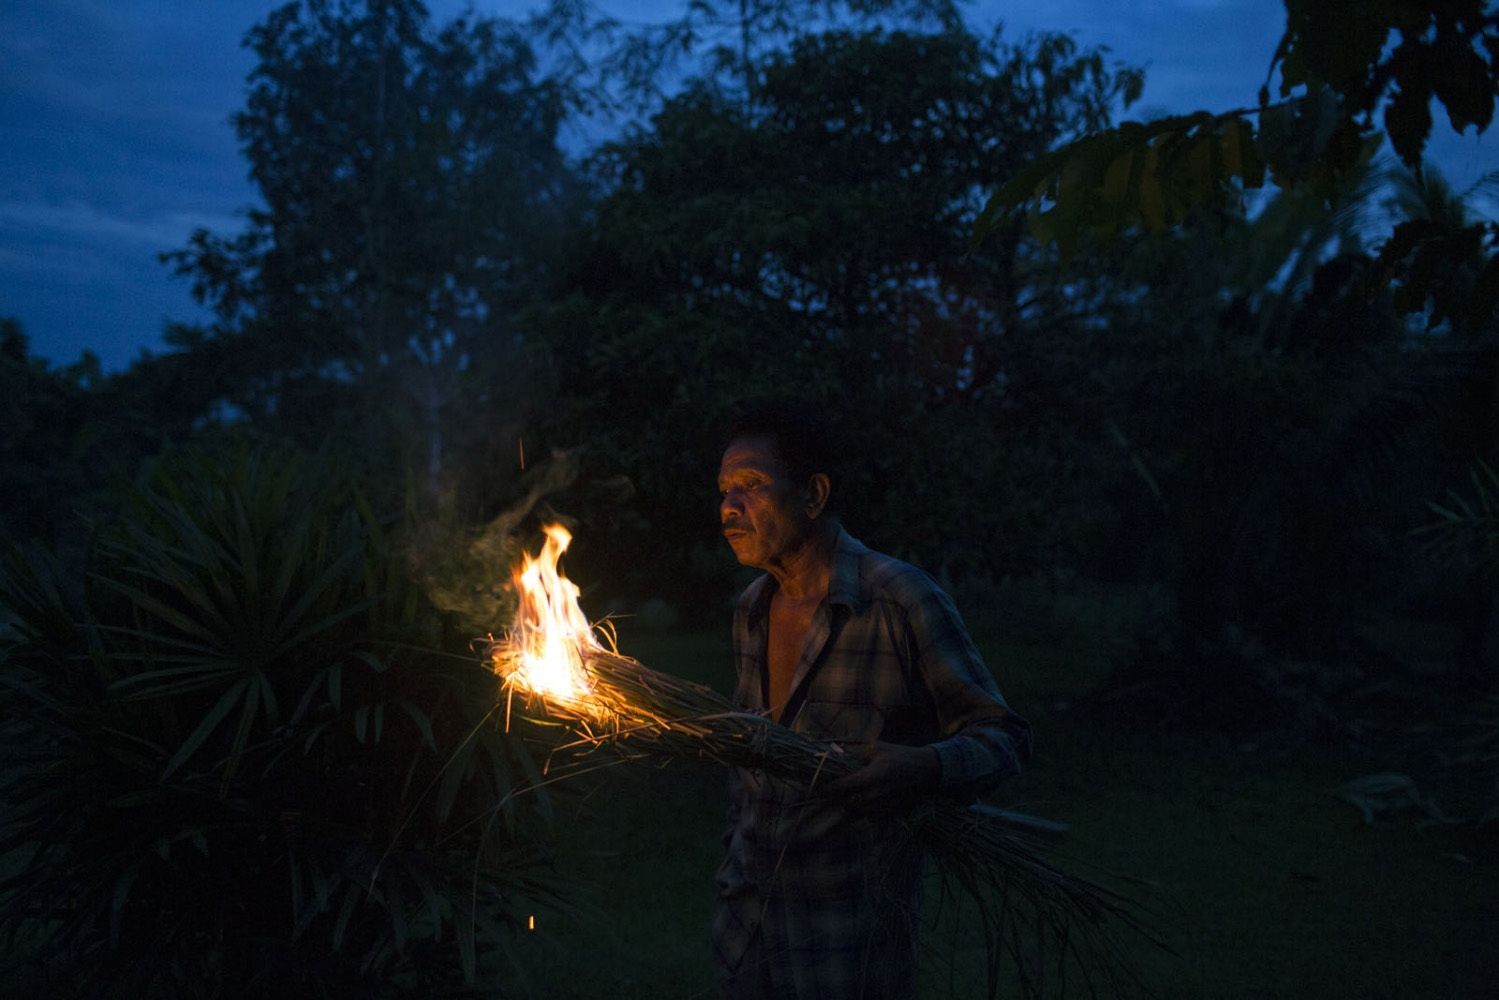 Pratip Rakhungthong, 61, lights dried lemongrass grown in the village to keep away mosquito's.